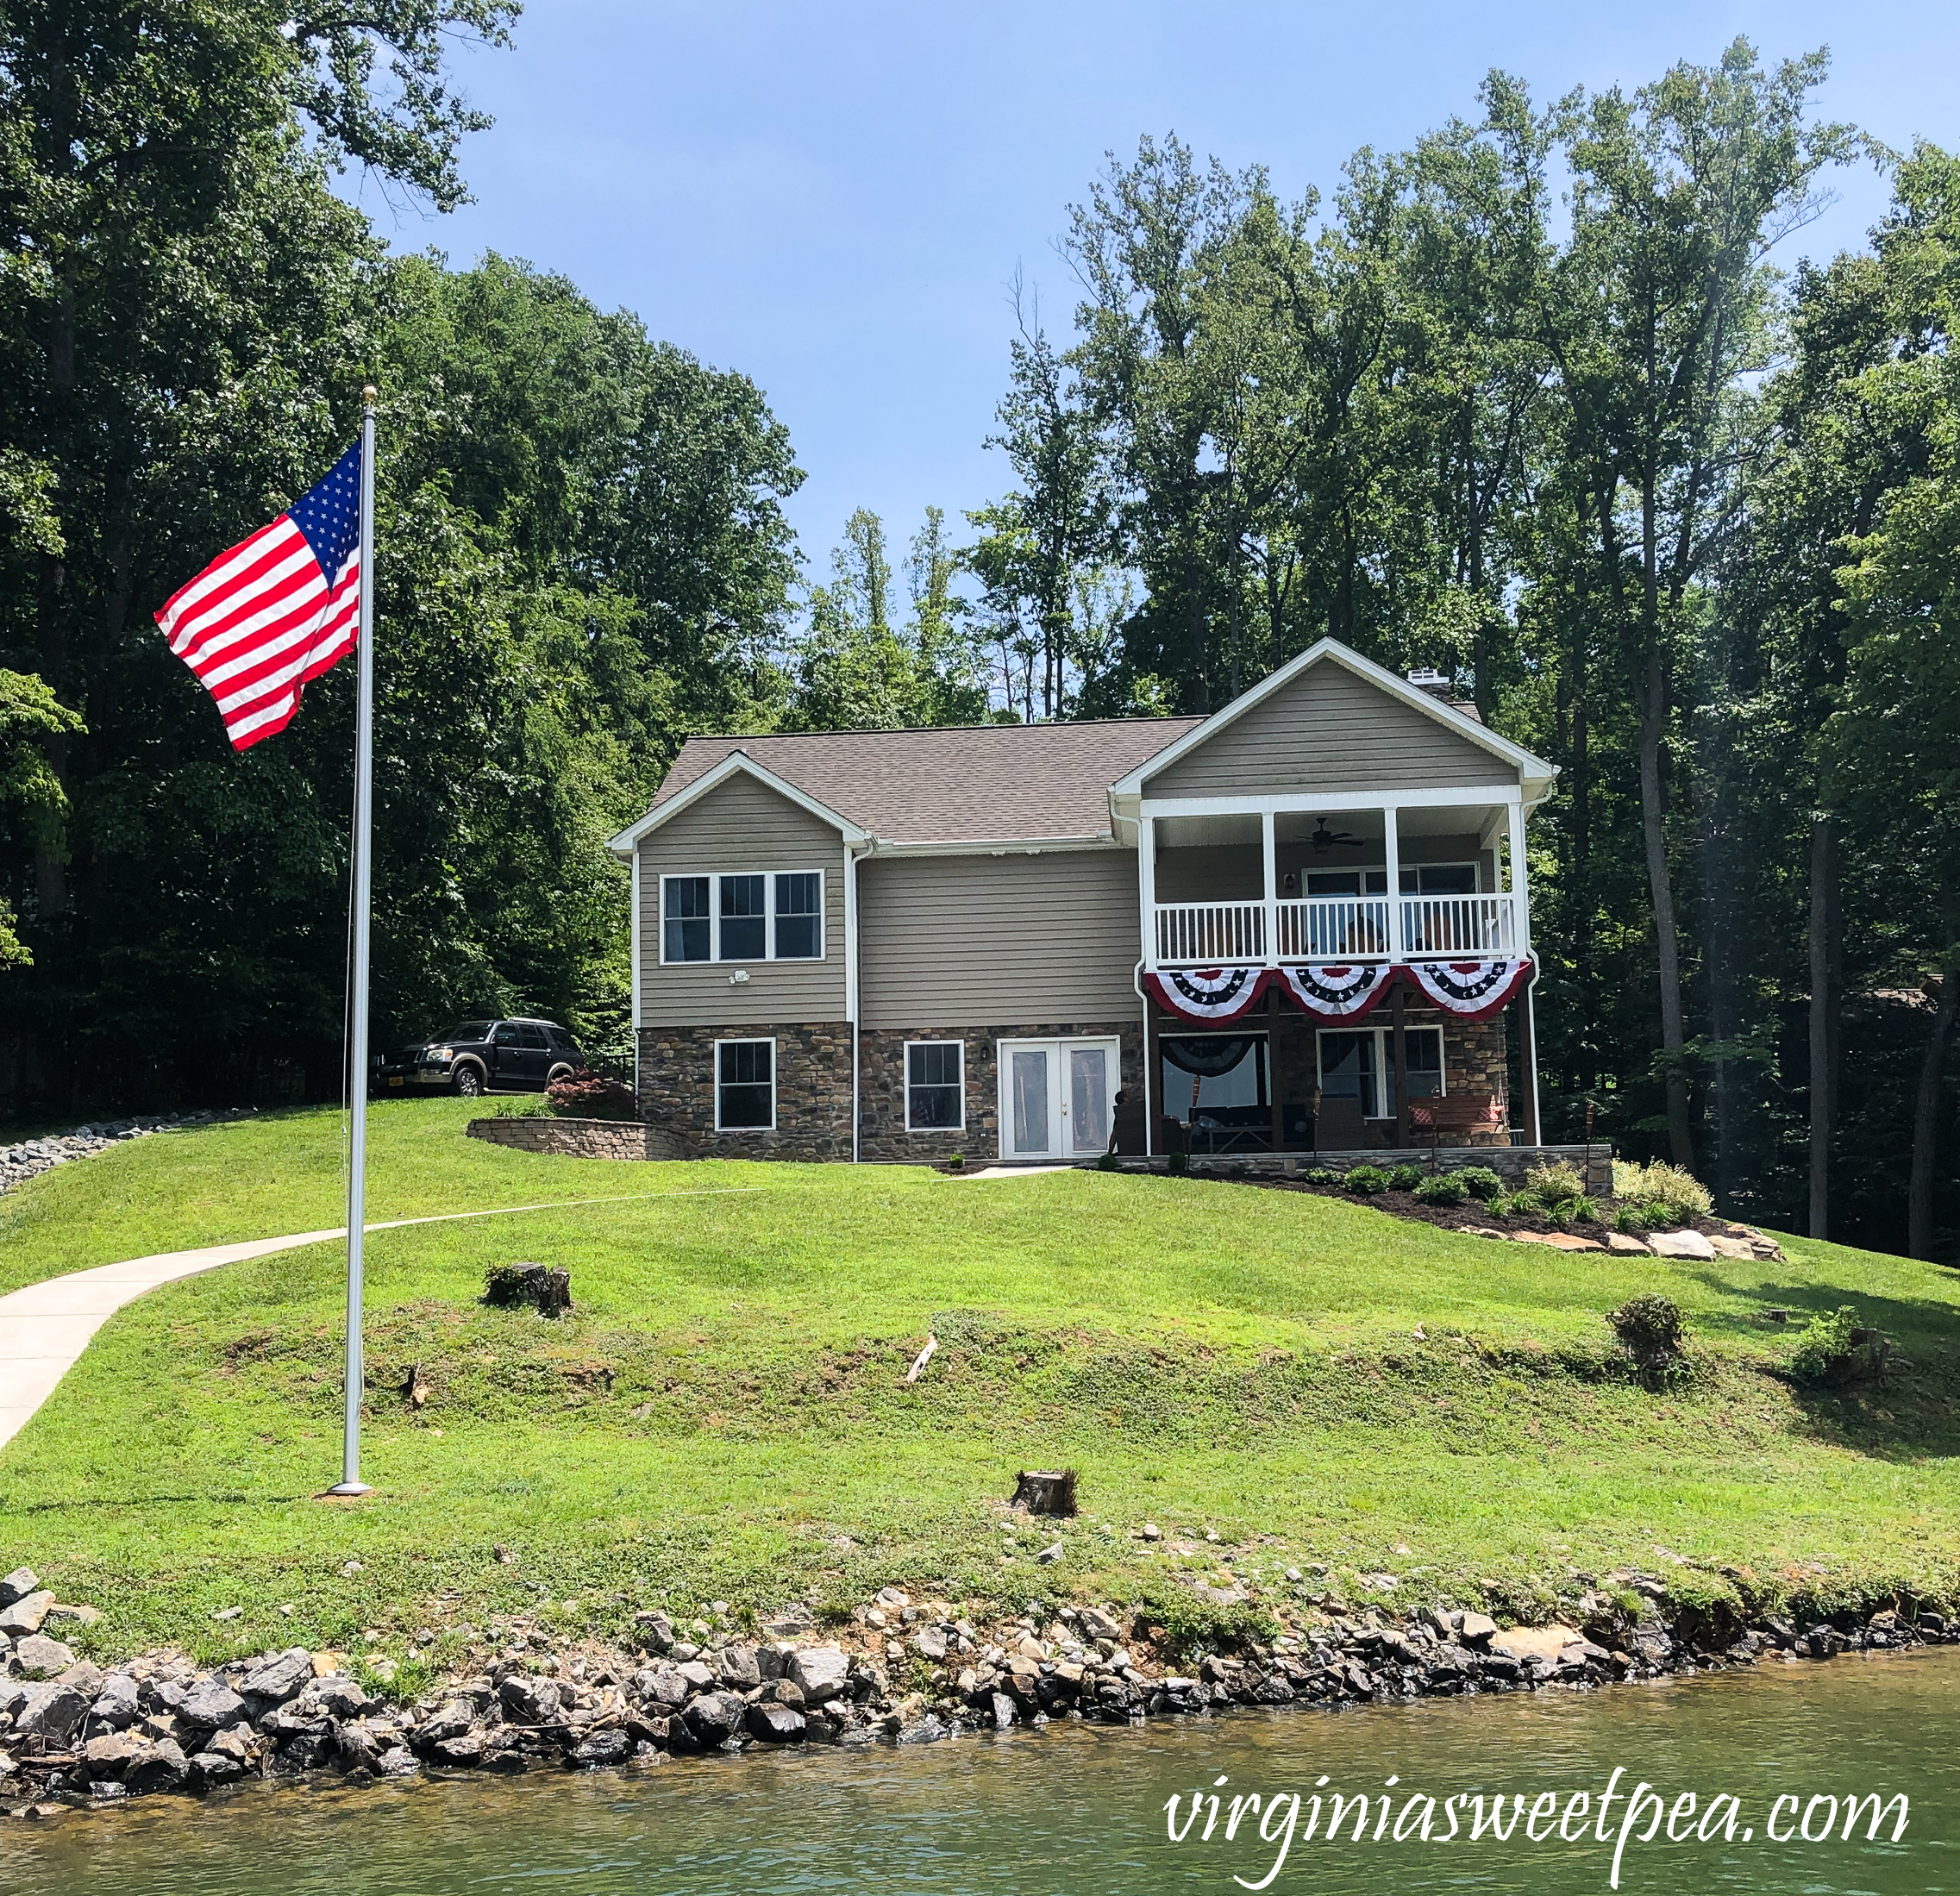 House at Smith Mountain Lake, Virginia with flagpole in the yard